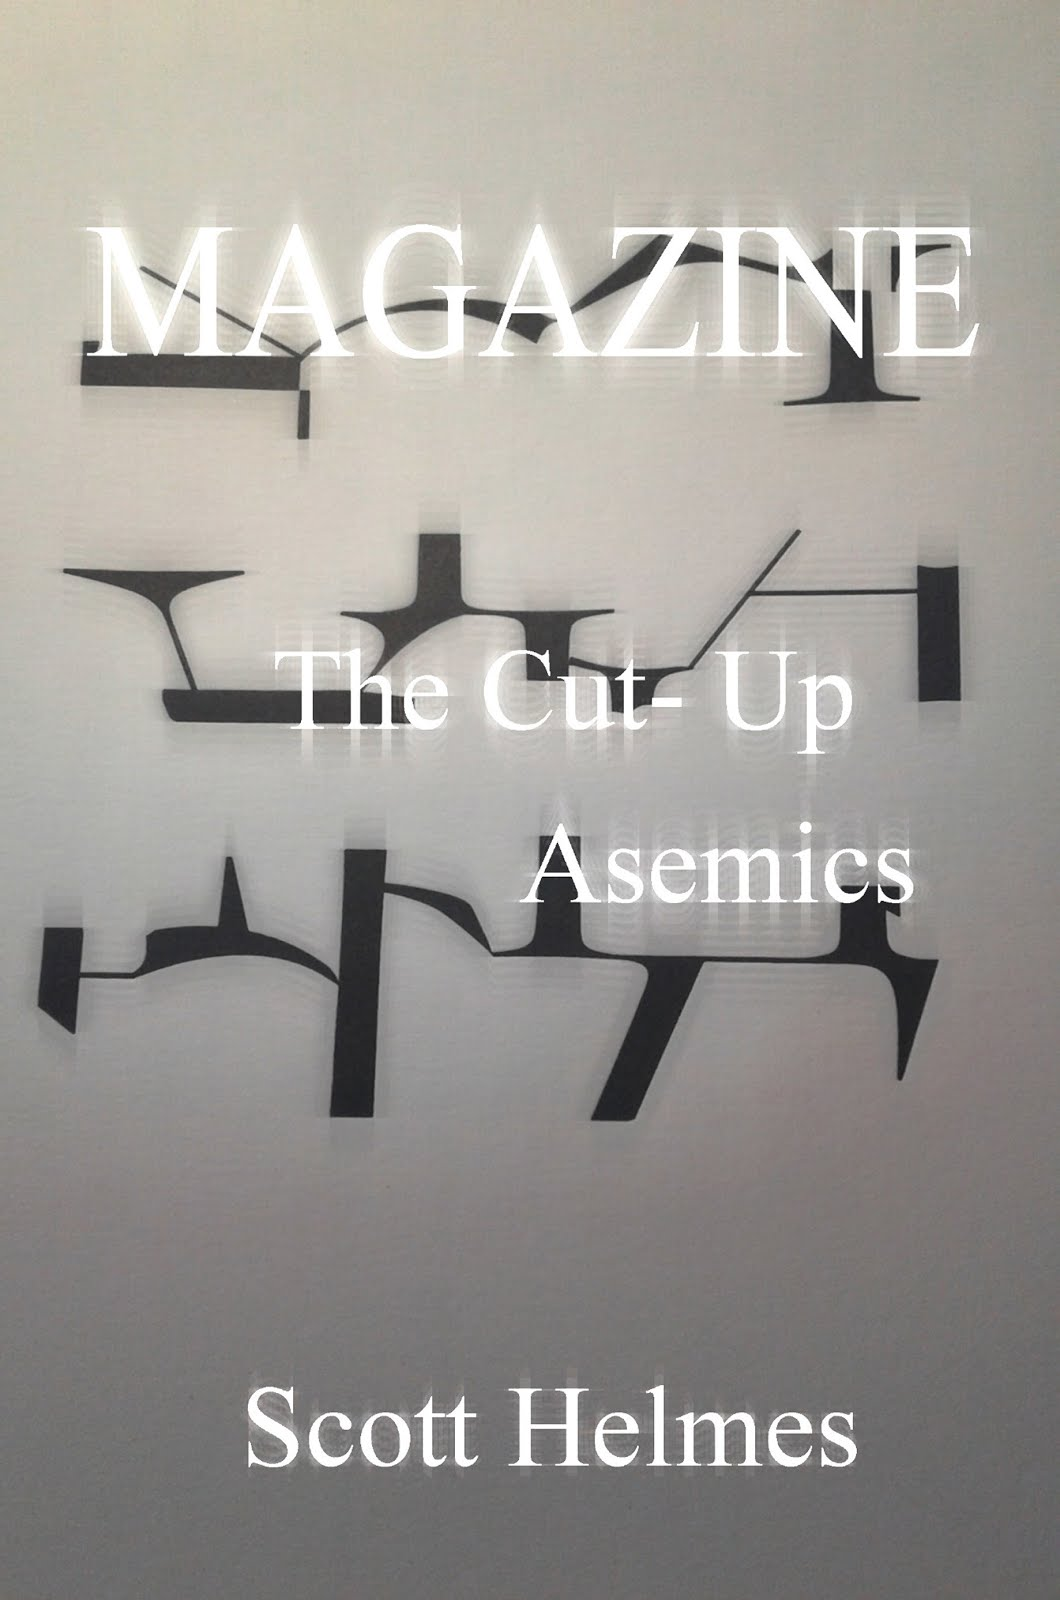 Coming Soon in Fall of 2019! Magazine: The Cut-Up Asemics by Scott Helmes